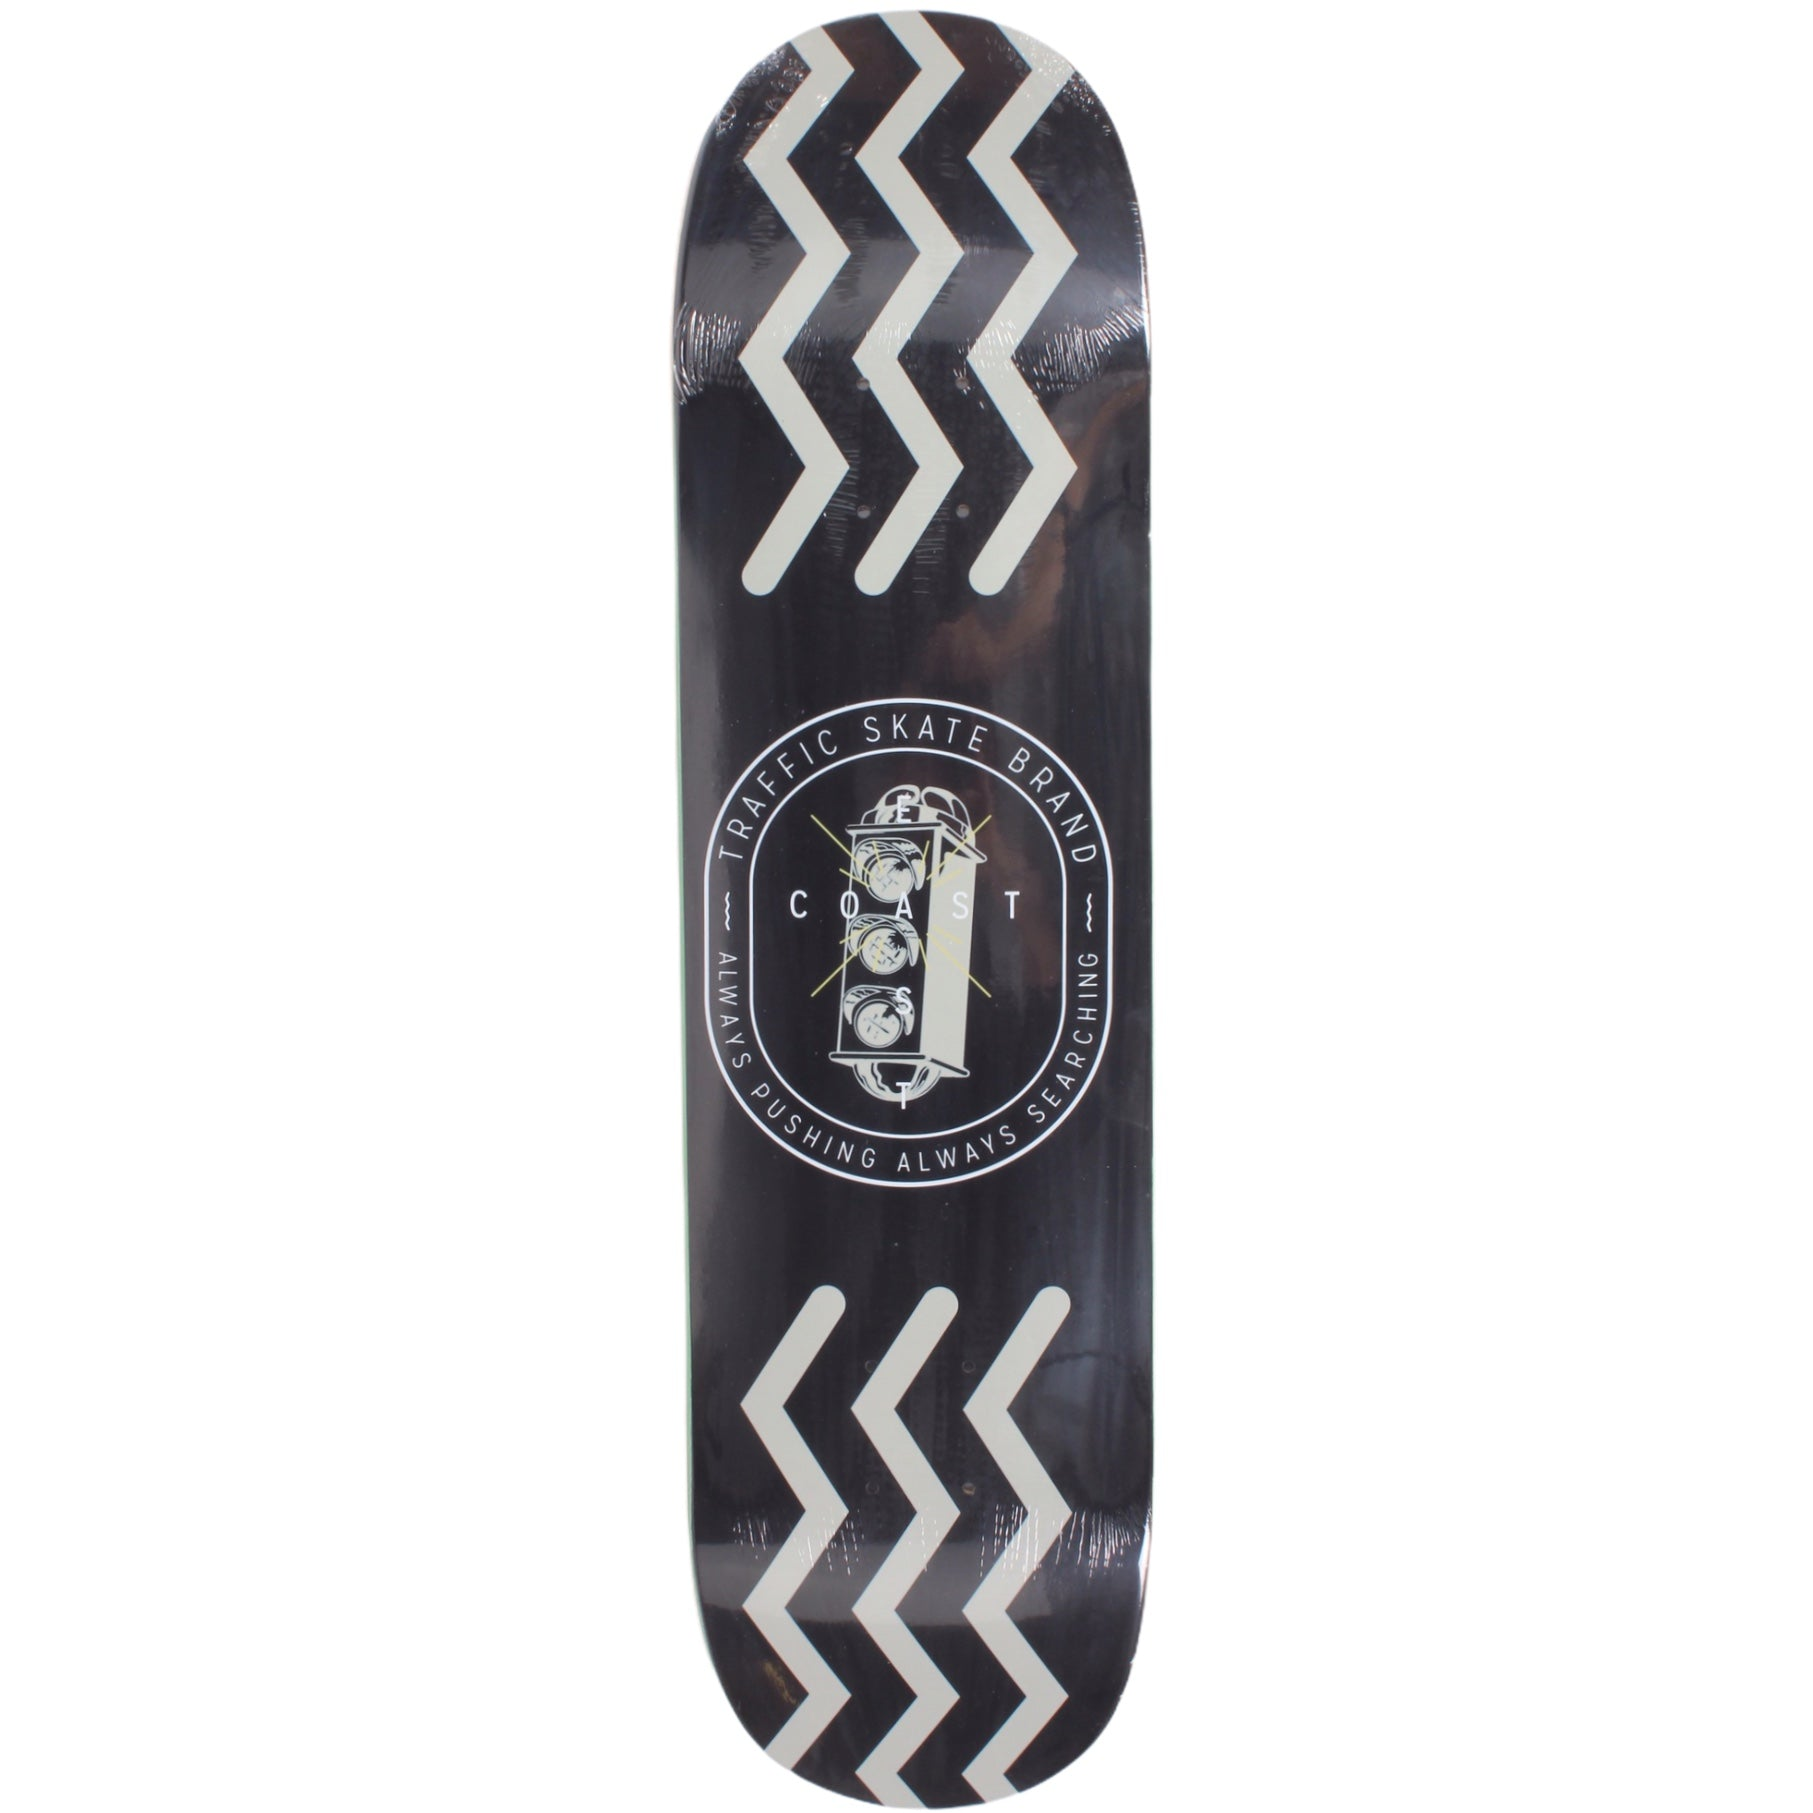 Traffic East Coast Deck 8.0""